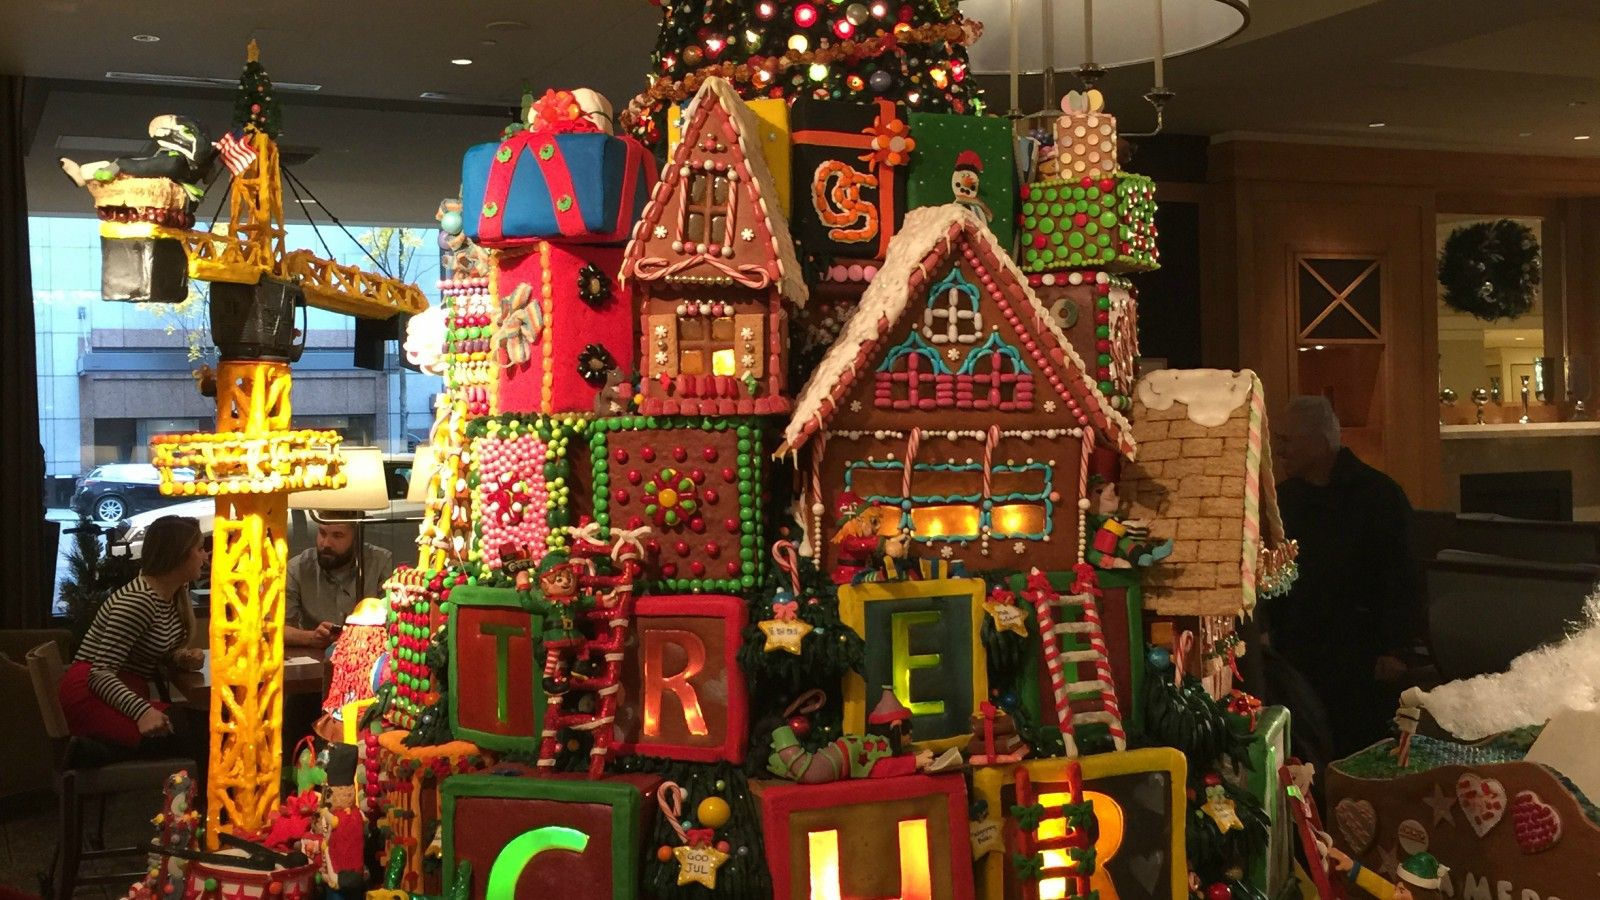 Top 10 Gingerbread House Displays From Around The World National